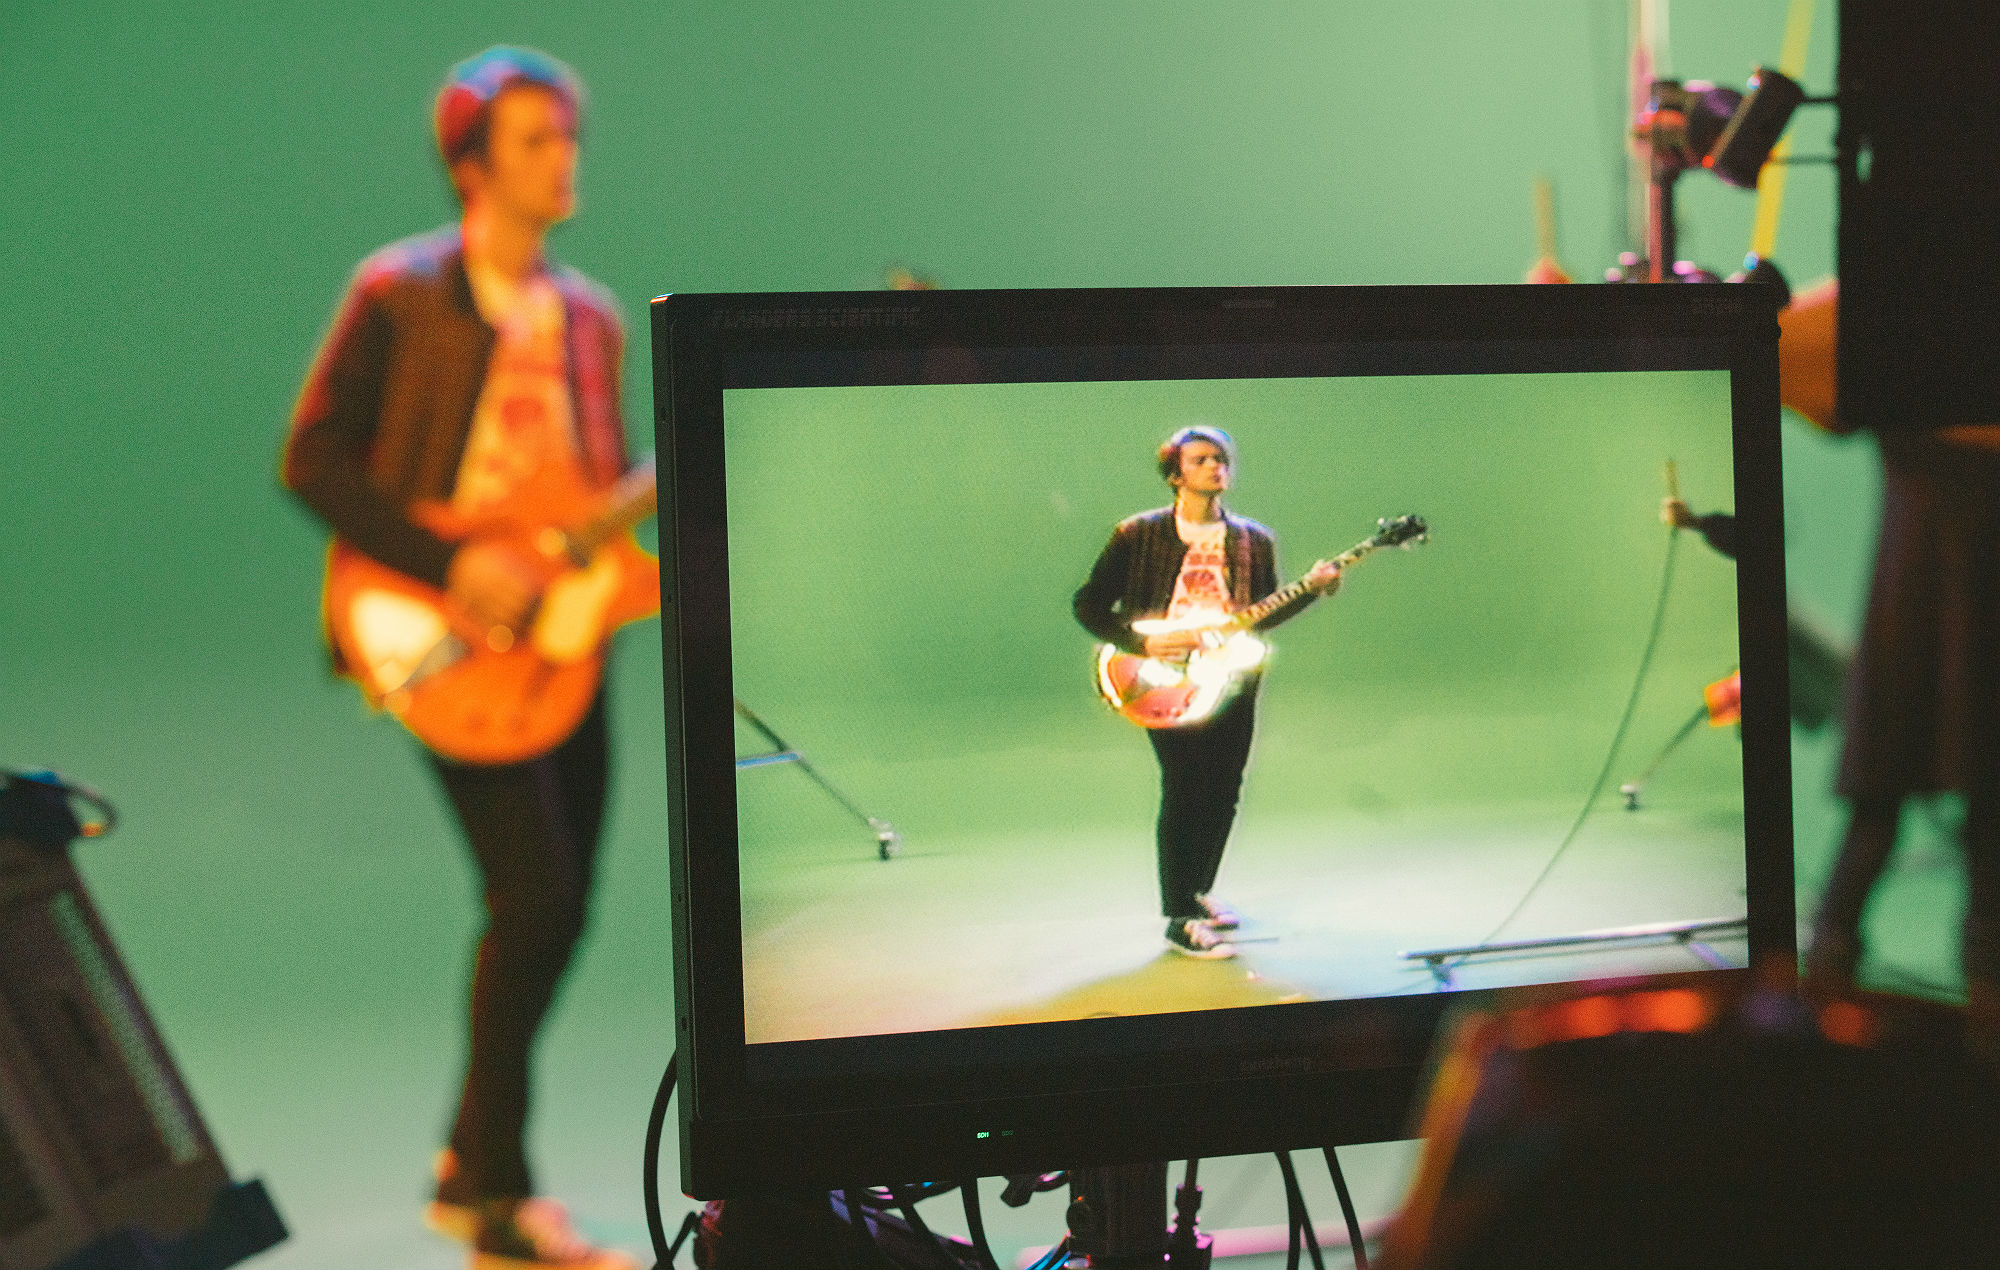 Behind the scenes of iDKHow's 'Razzmatazz' video